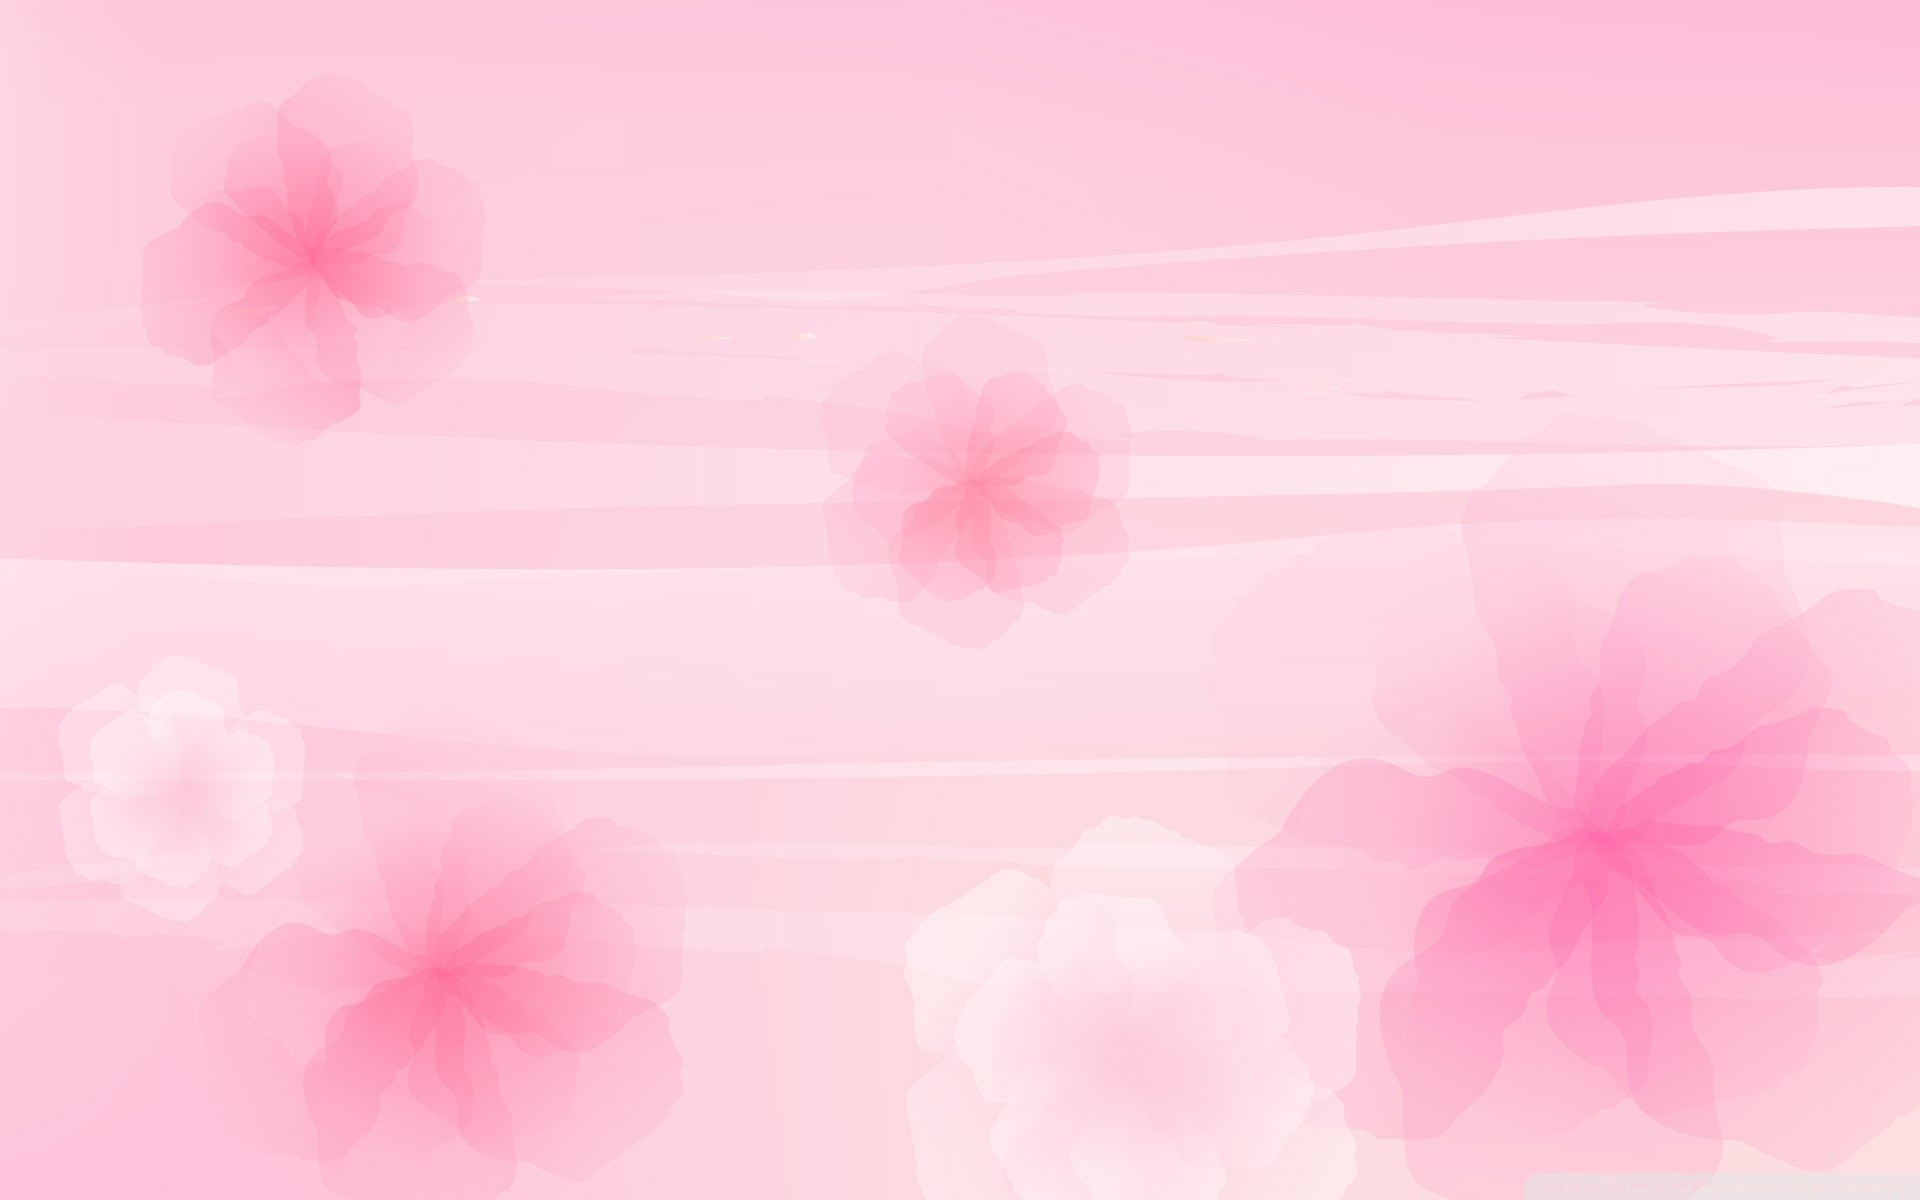 Pastel Lace Backgrounds Tumblr Lights You Themes Displaying Images For Pink  Nursing Background. house site …